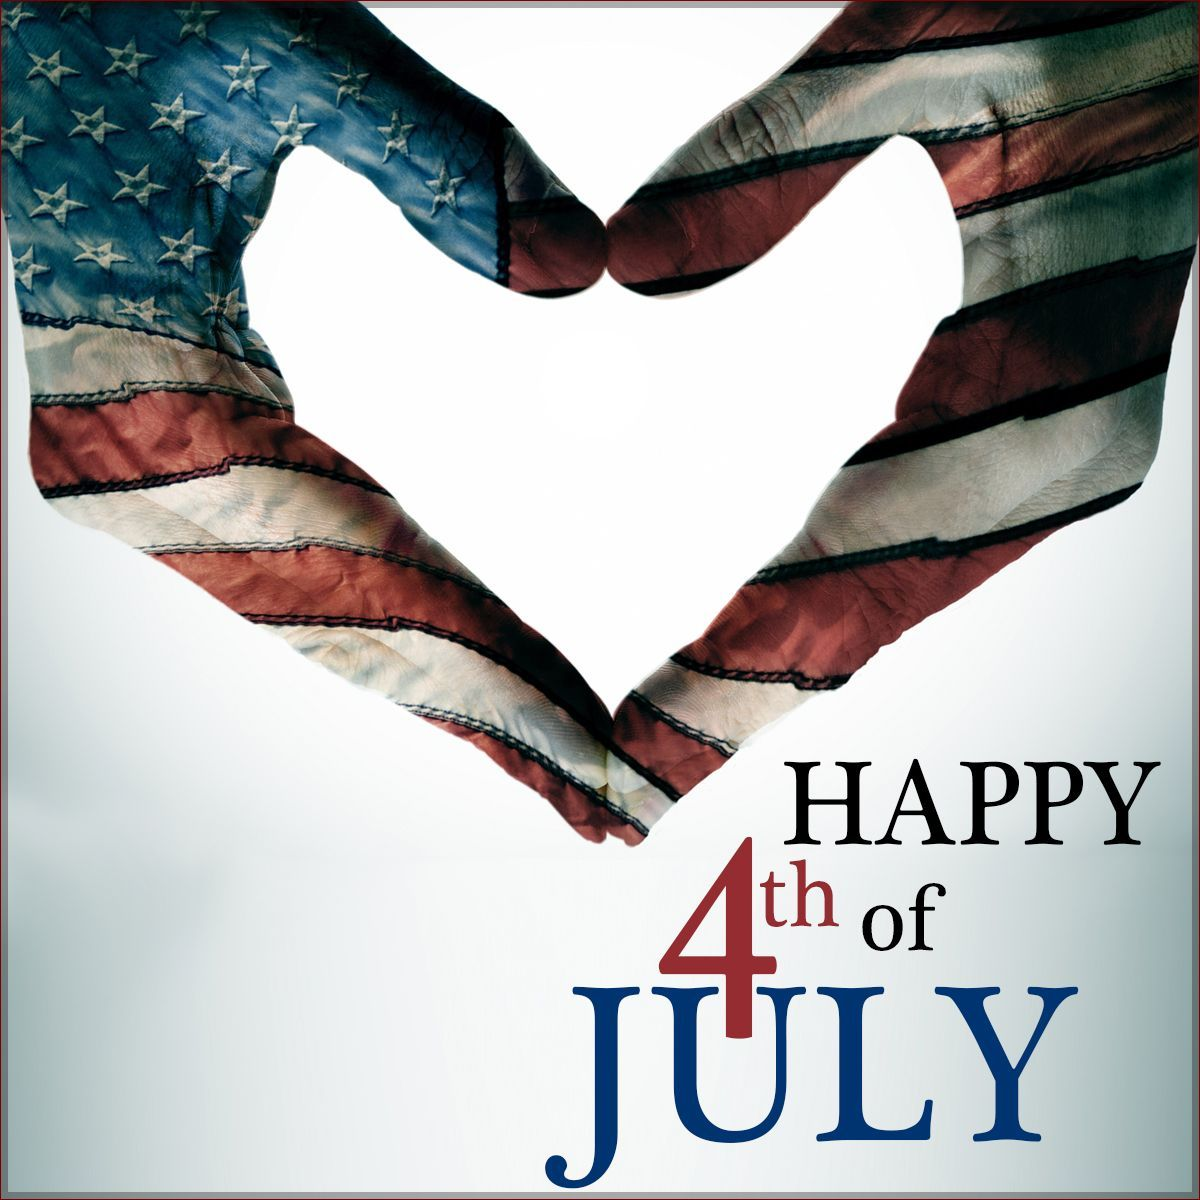 Happy 4th of July!! 4thofjuly honor freedom brave